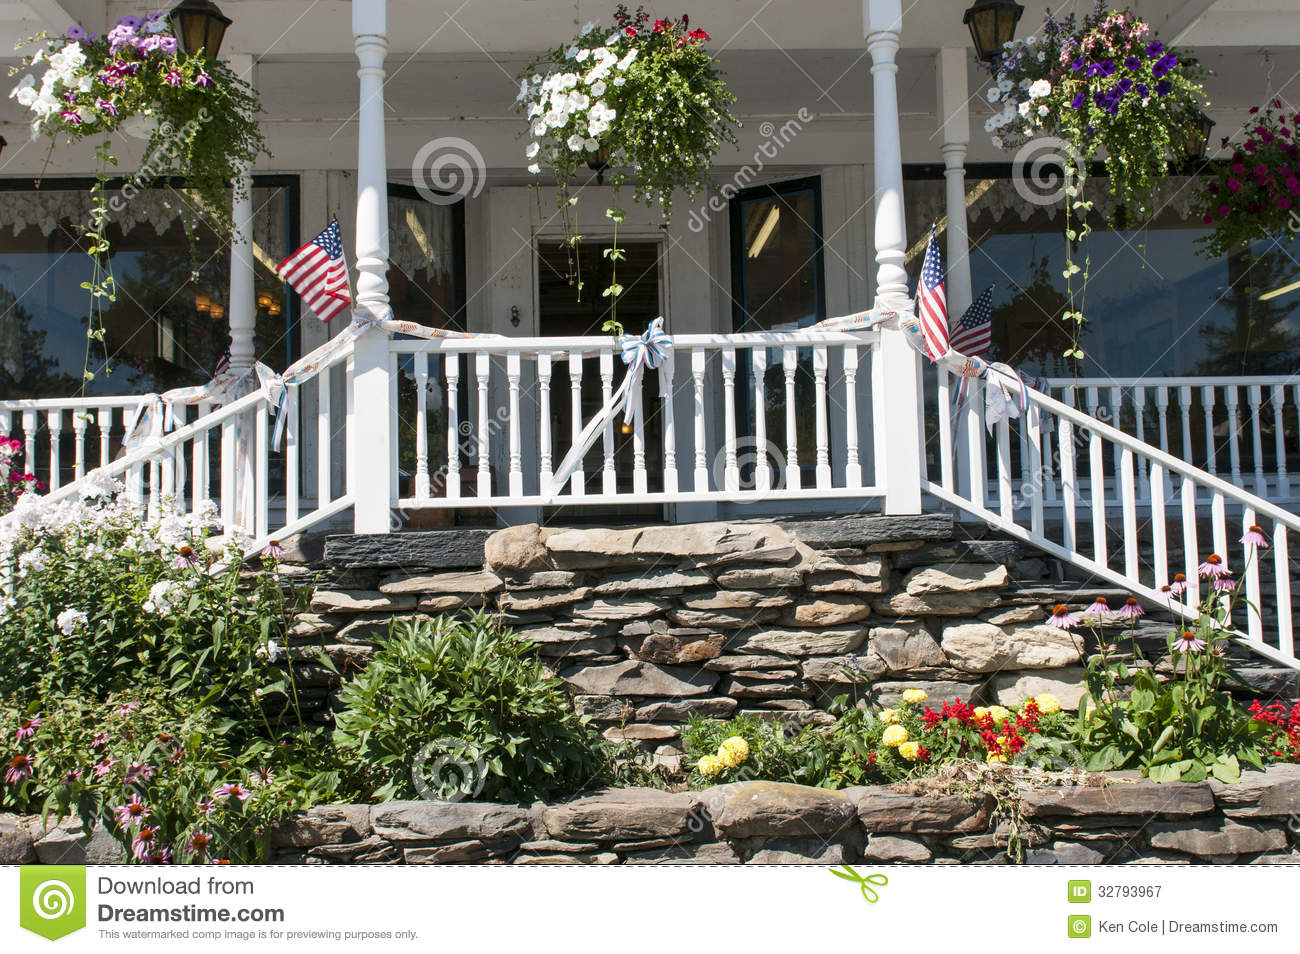 Landscape flowers and porch steps royalty free stock for The country porch com